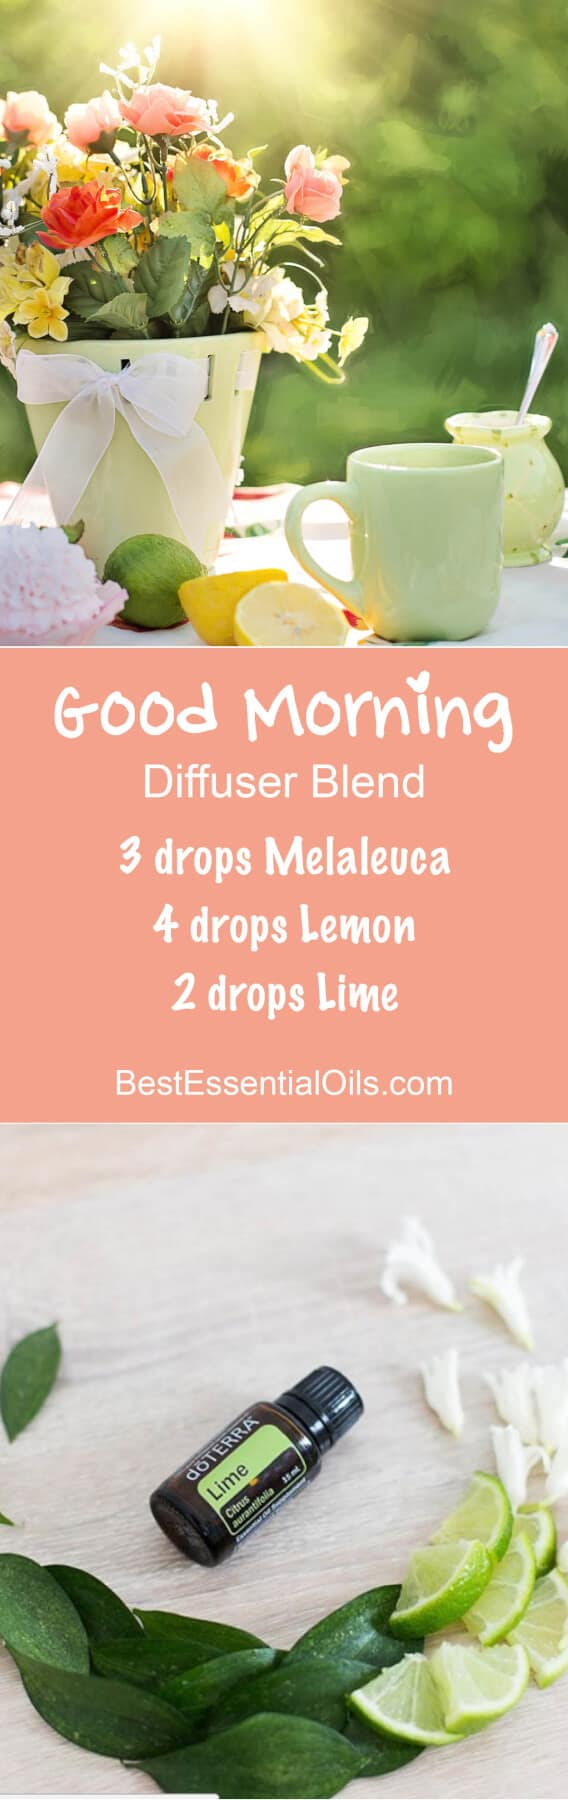 Good Morning doTERRA Diffuser Blend